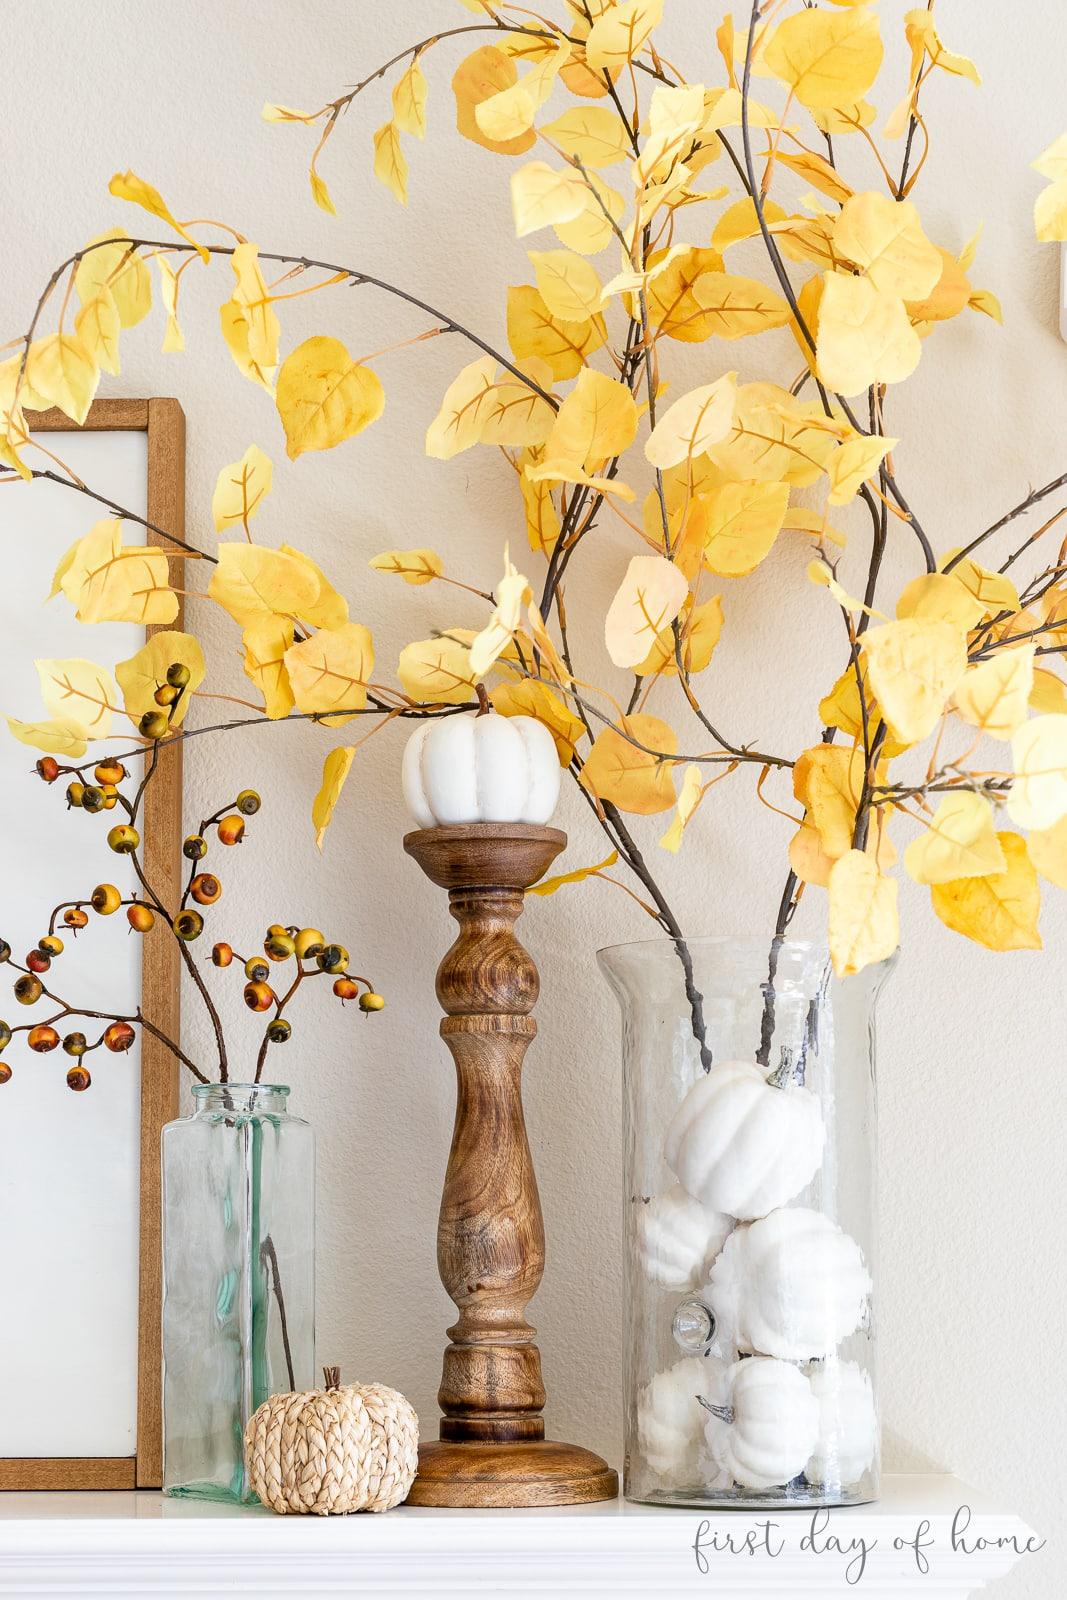 Faux aspen stems in glass hurricane jar next to pumpkin on candlestick and small glass with fall stem